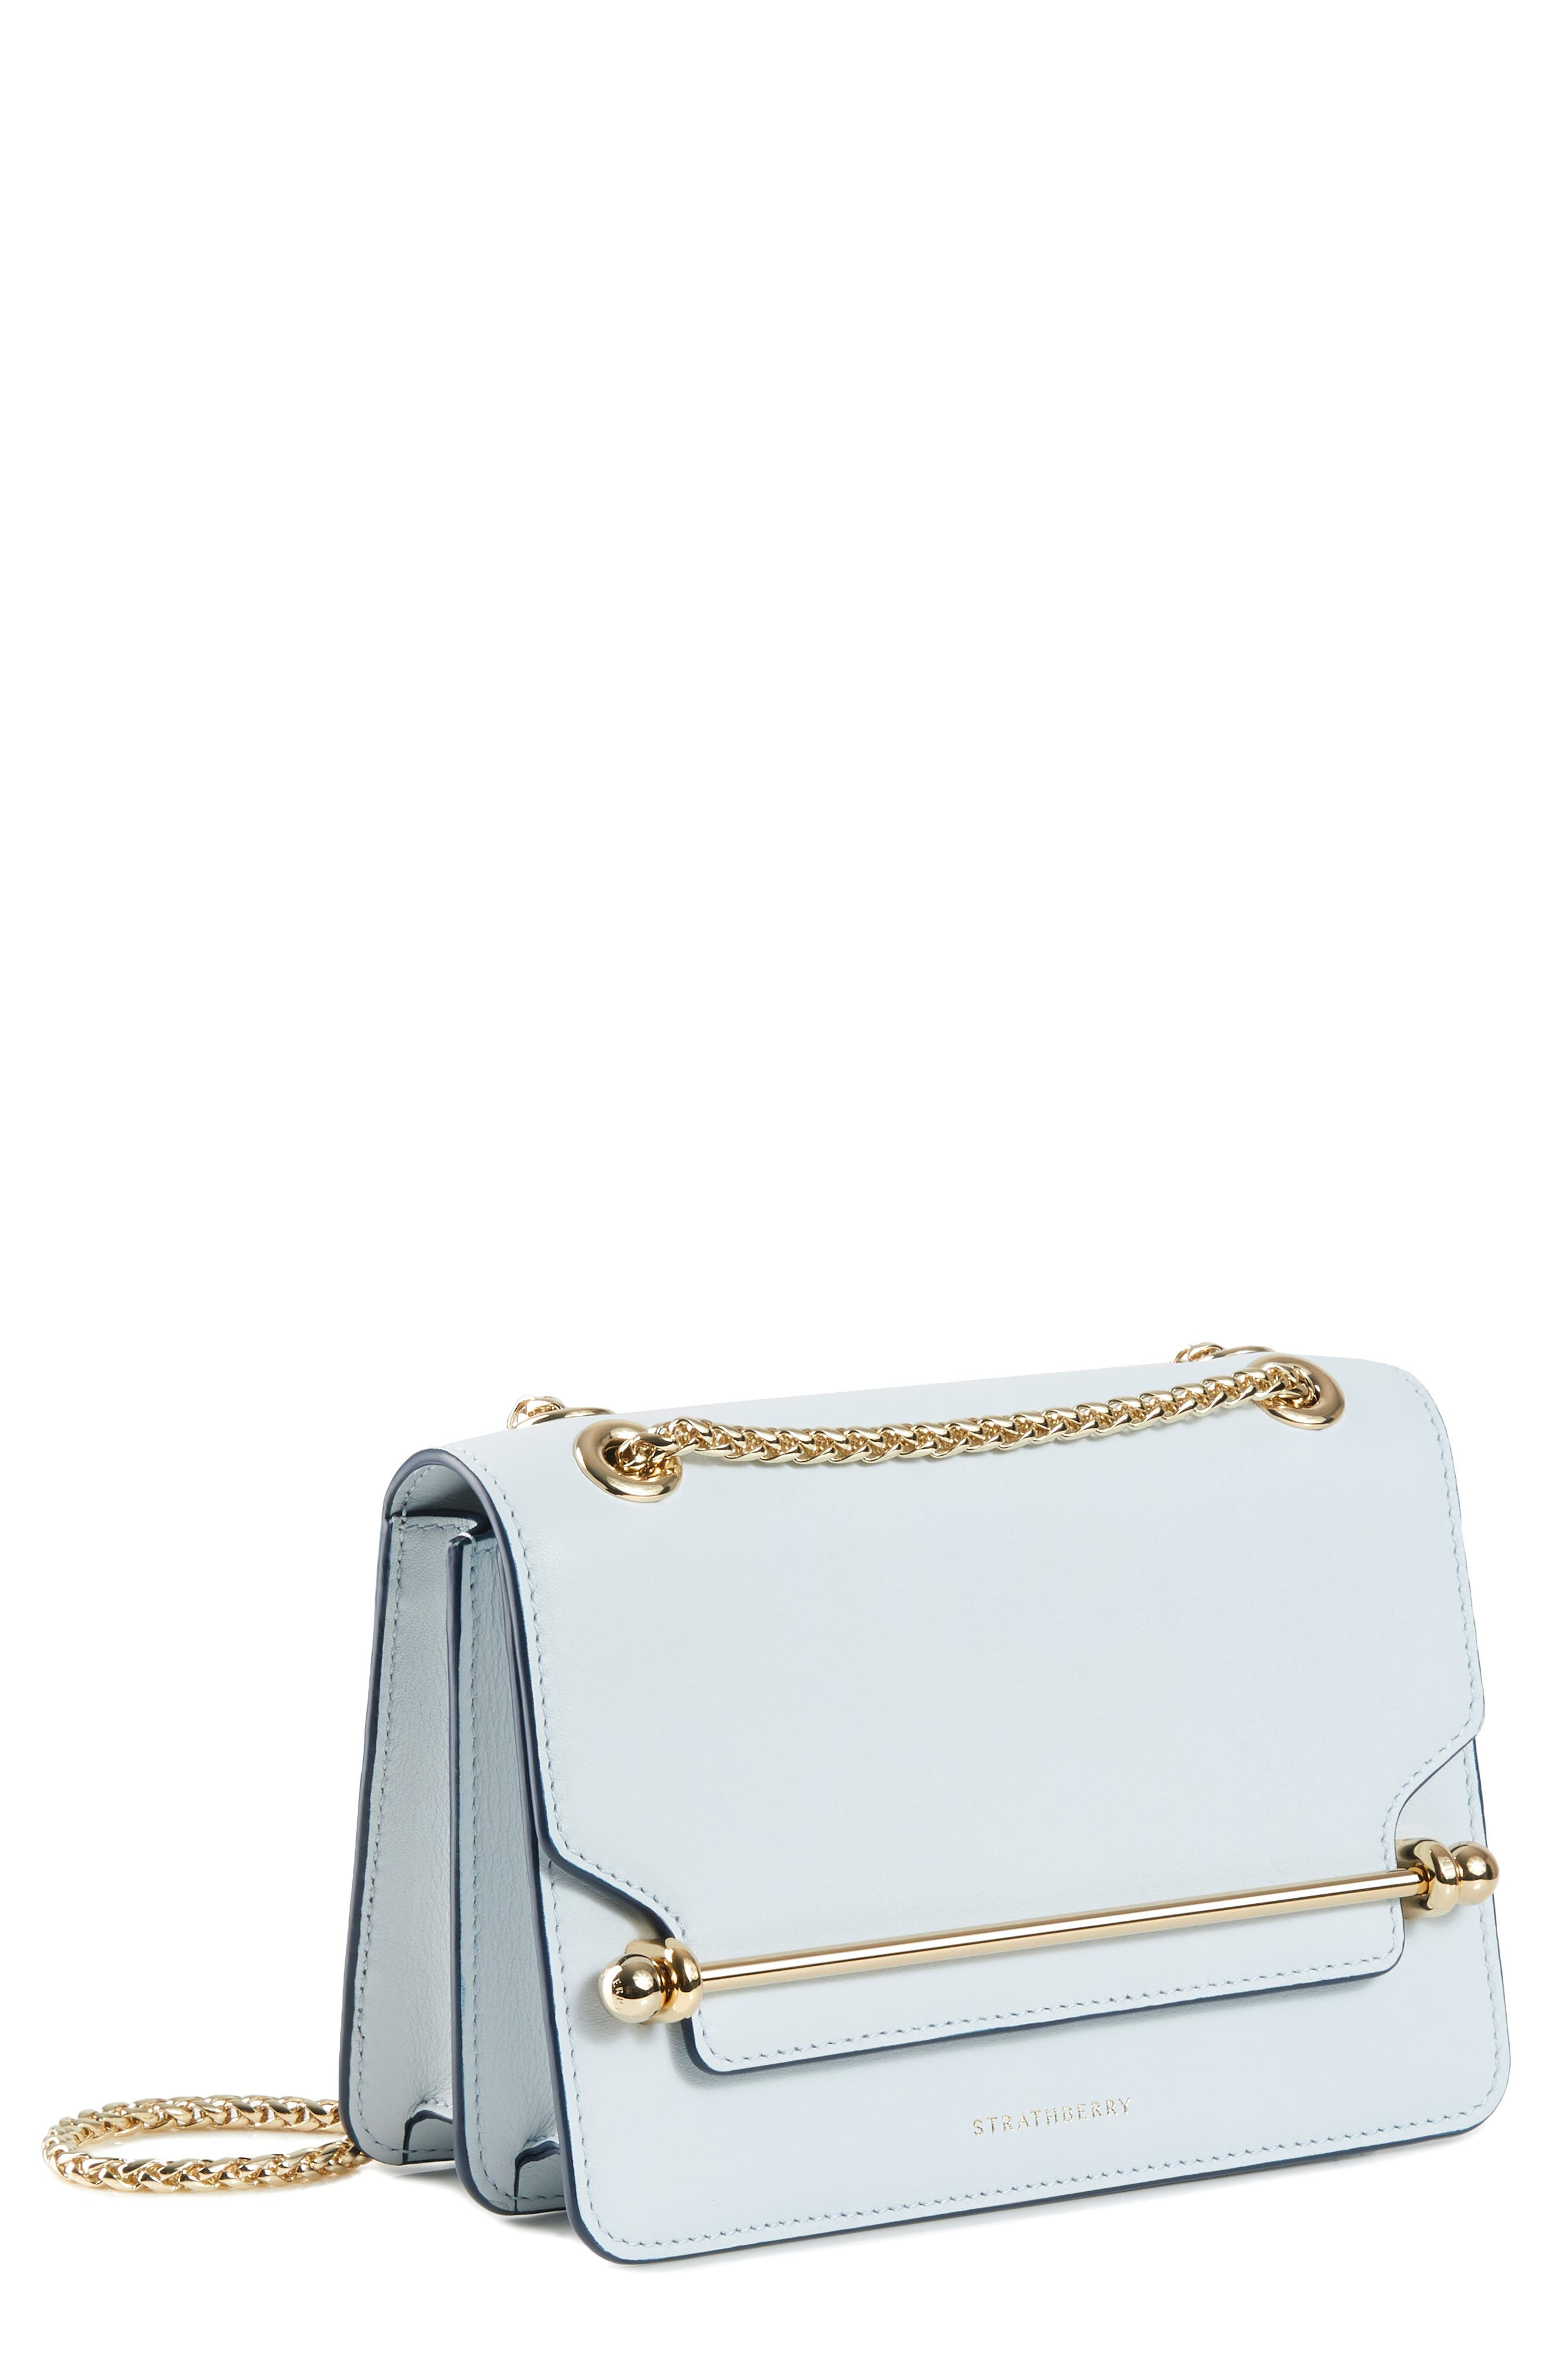 STRATHBERRY,                             Mini East/West Leather Crossbody Bag,                             Main thumbnail 1, color,                             ILLUSION BLUE